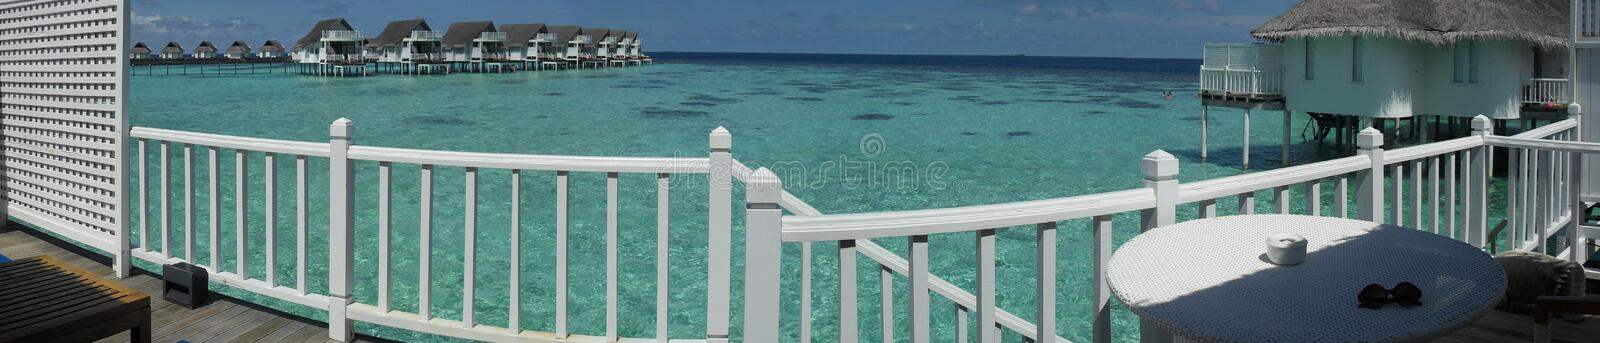 Maldives resort - panorama view from a bungalow stock photos